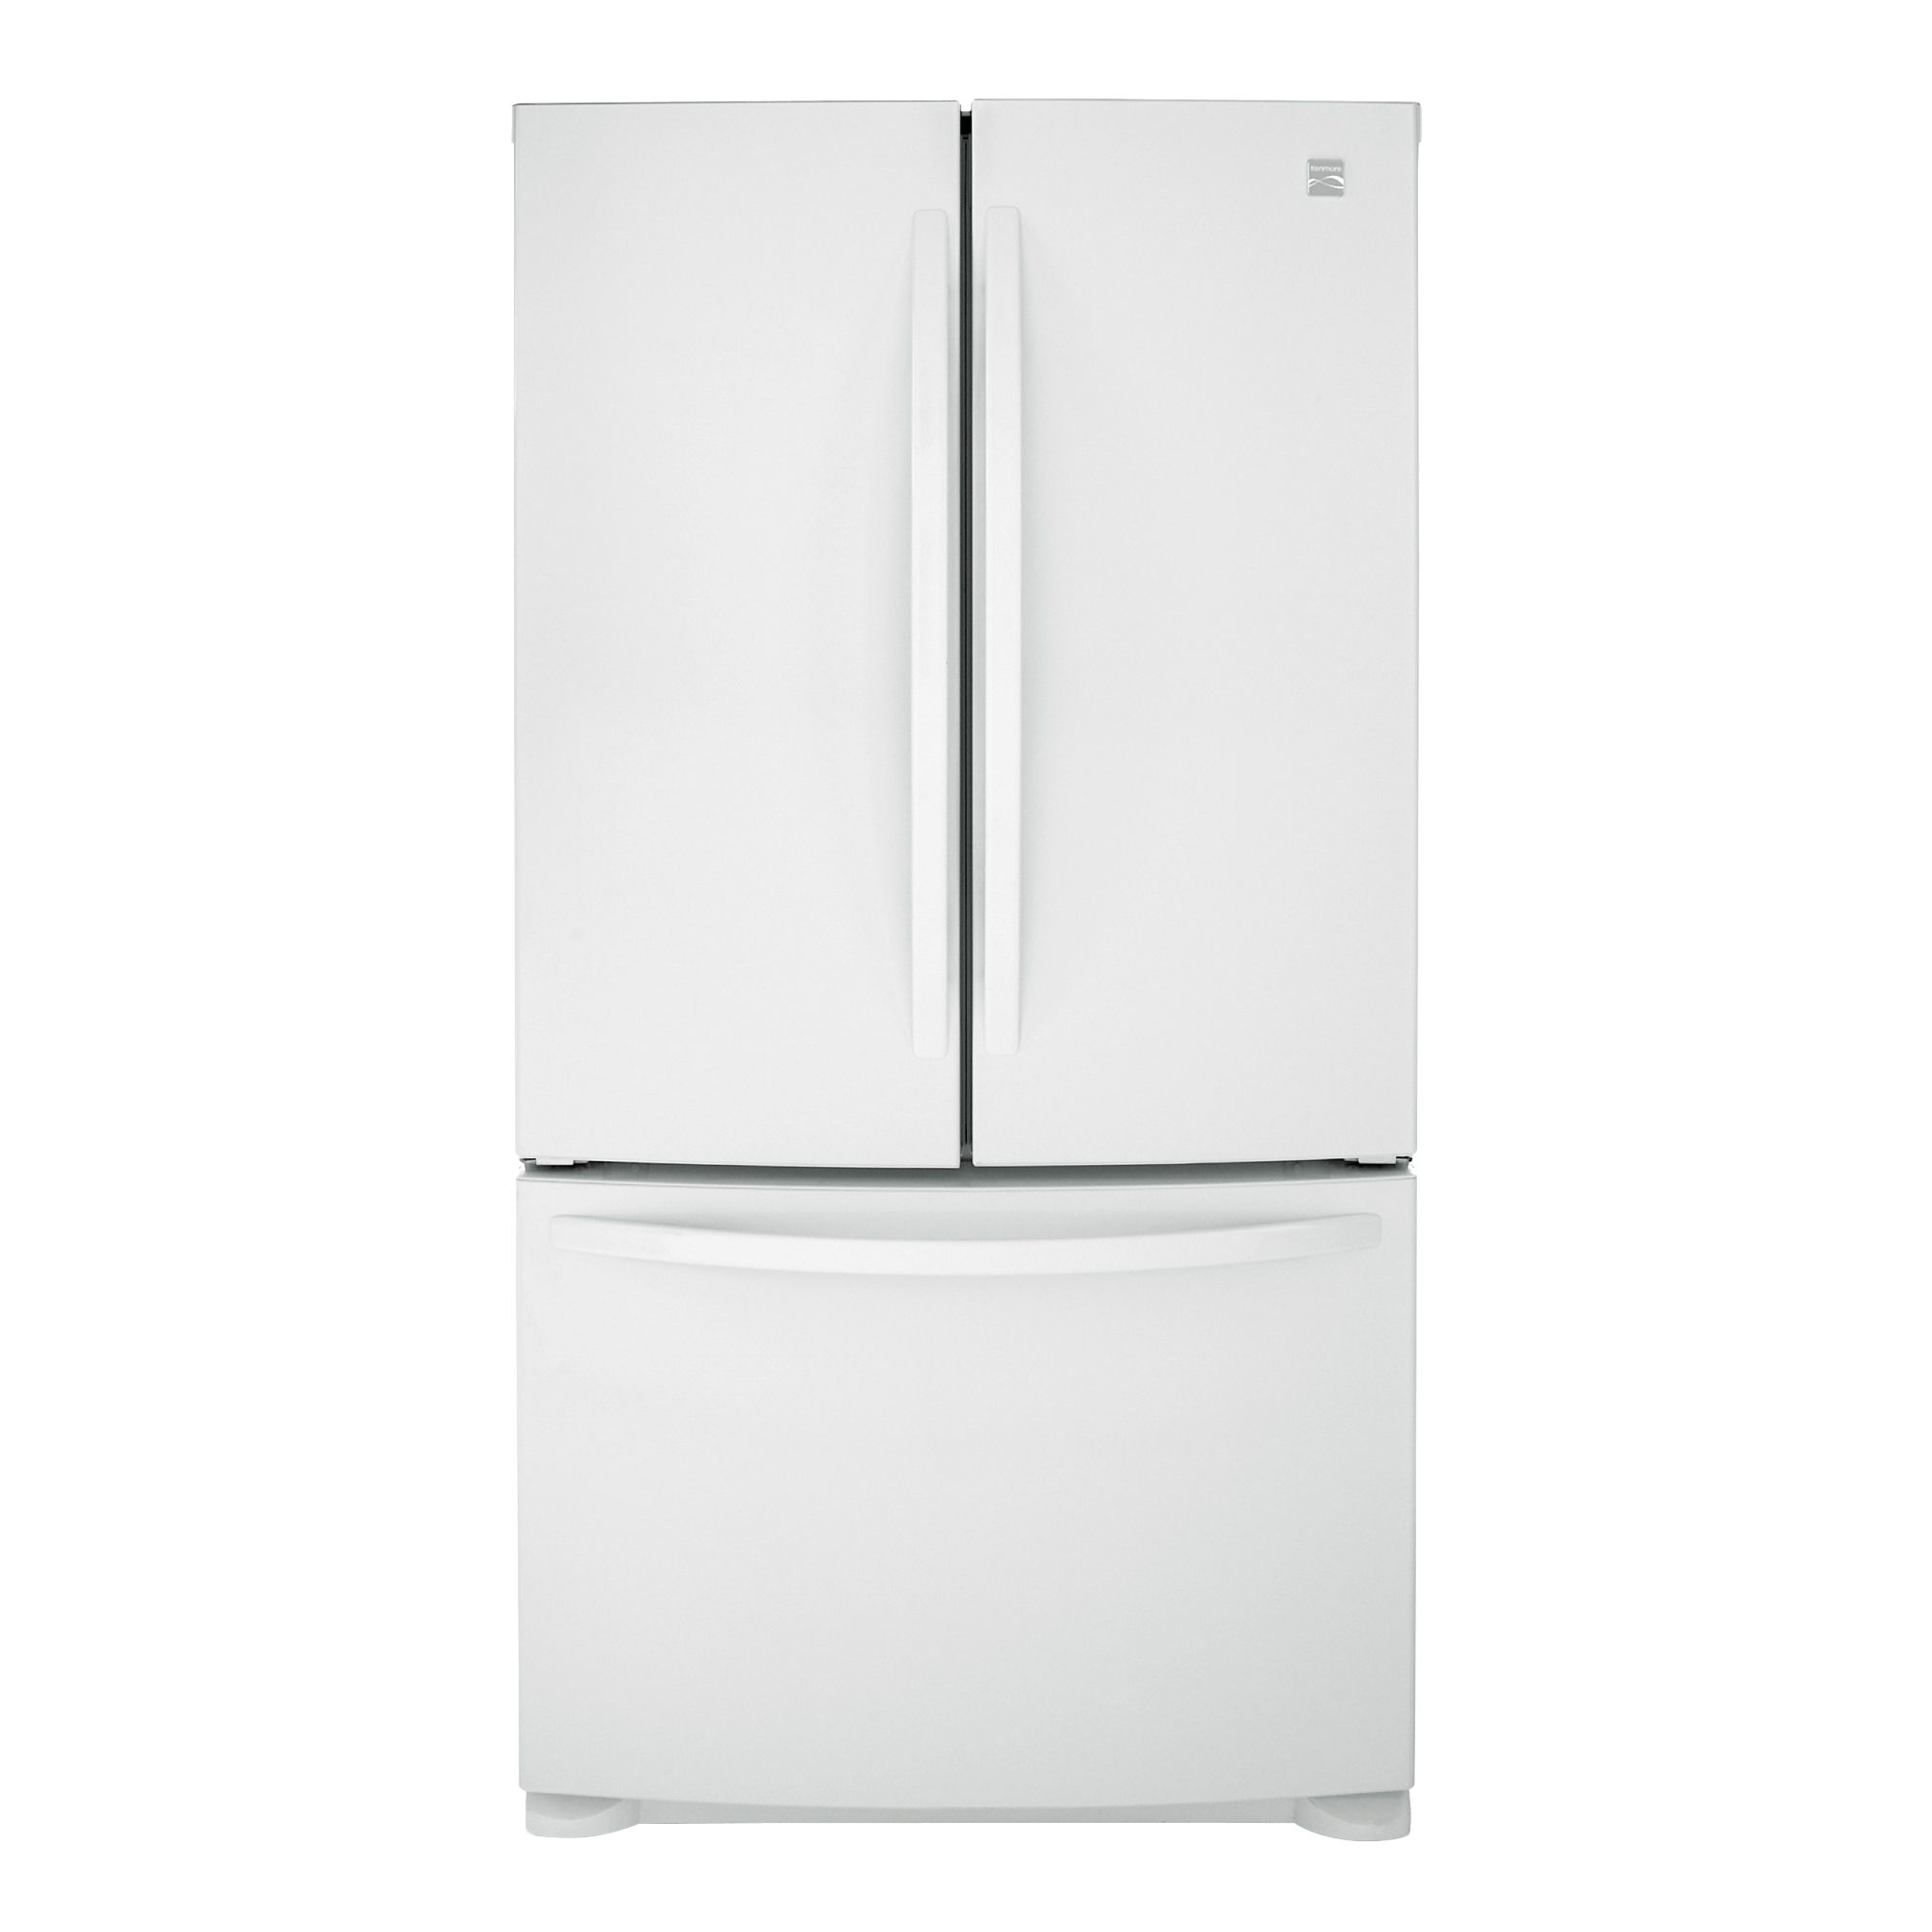 25.0 cu. ft. French Door Bottom-Freezer Refrigerator - White                                                                     at mygofer.com